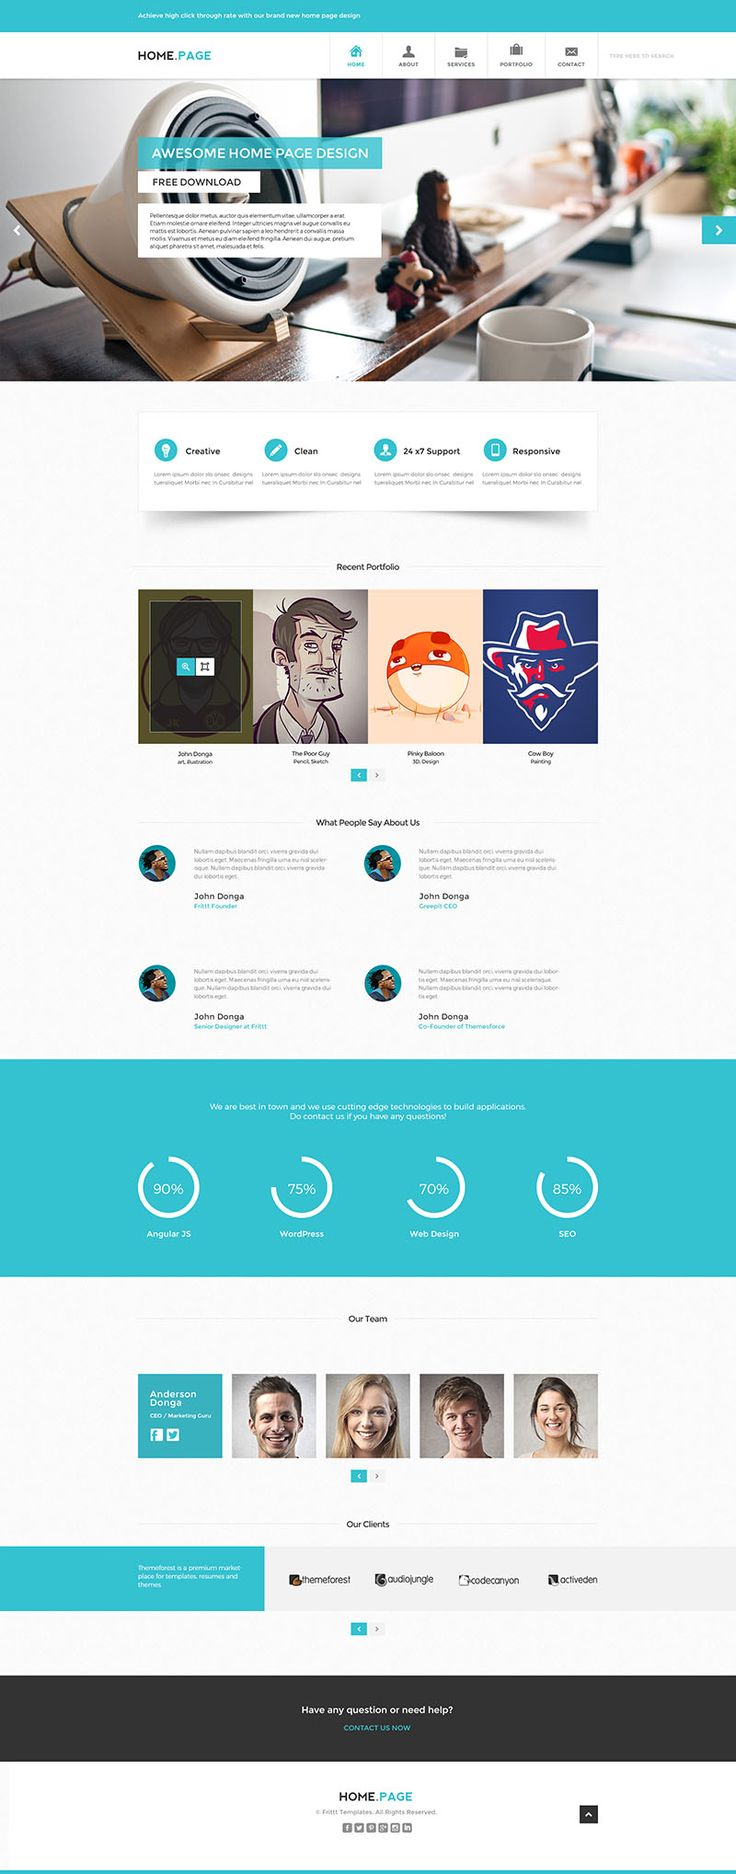 25 best Free Website Templates images on Pinterest | Free website ...